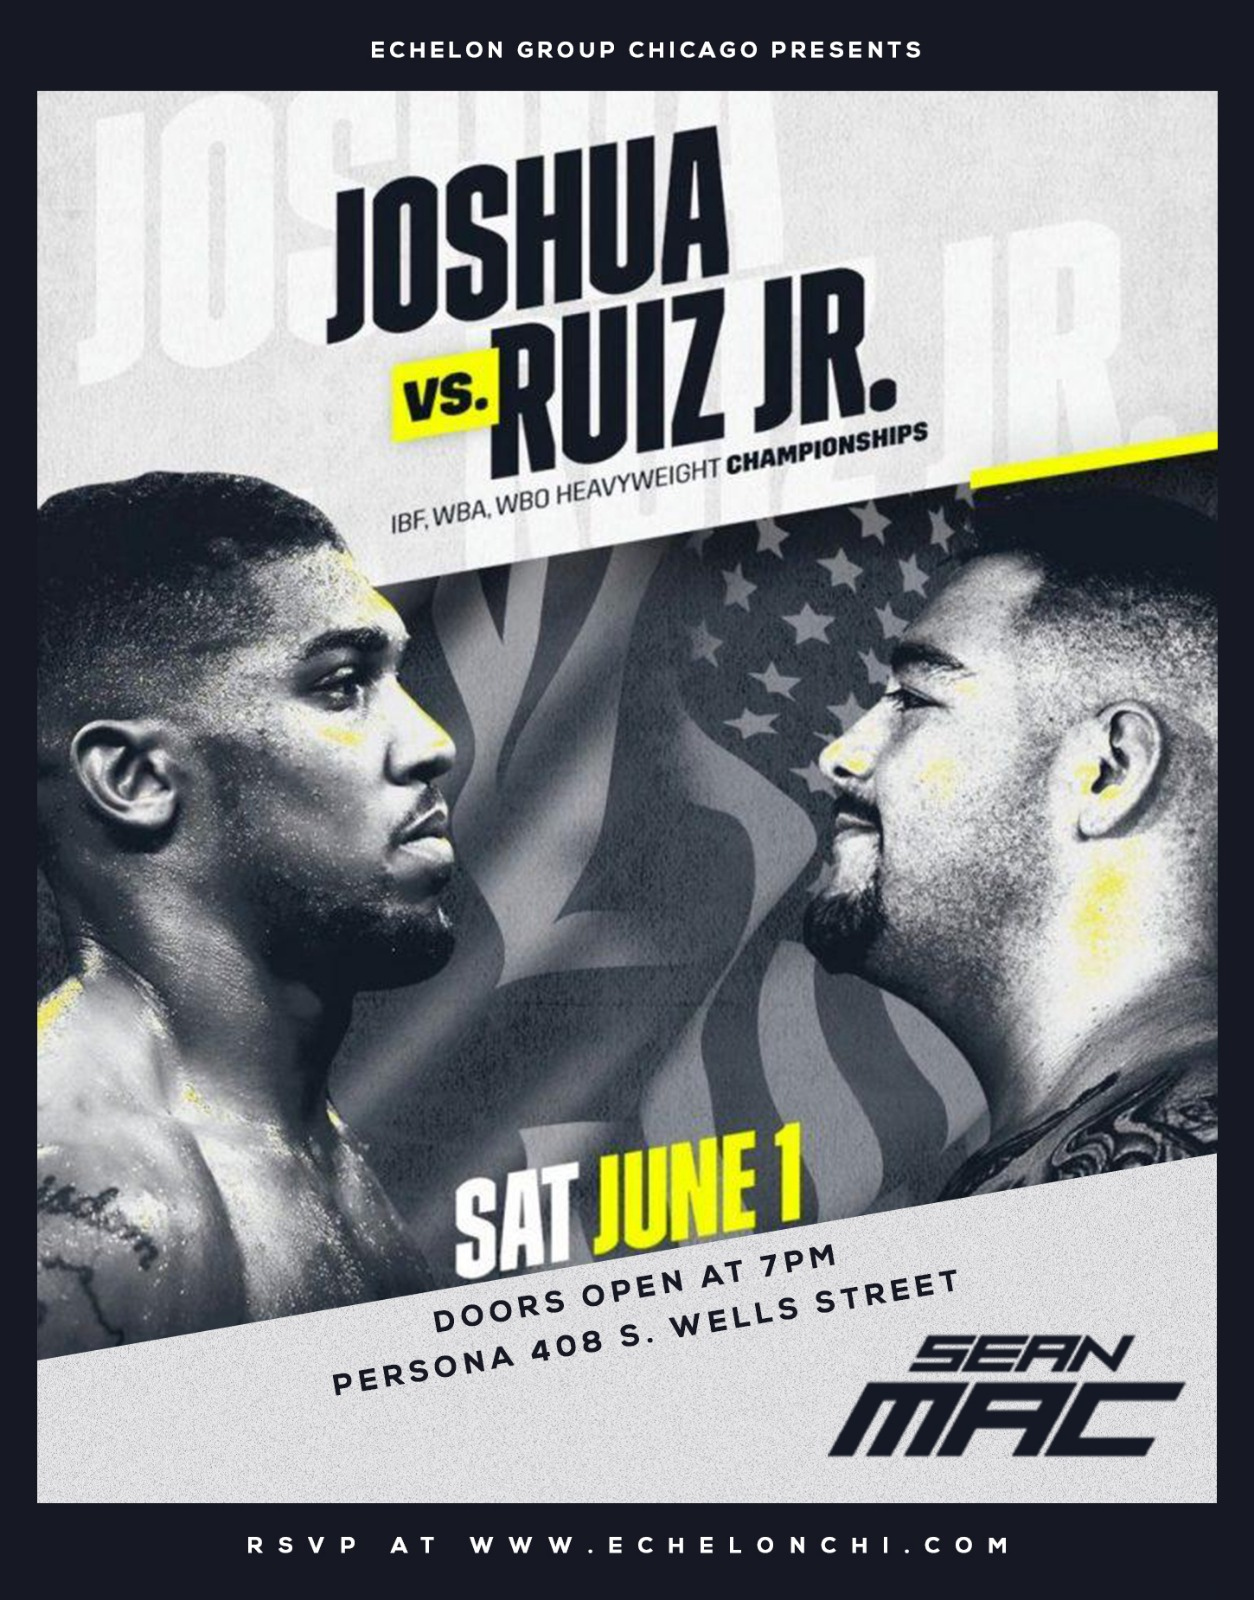 Heavy weight Boxing is back!!! Join us for the Heavyweight boxing match between the Unified Heavy Weight Champion-Anthony Joshua, and Heavy weight- Andy Ruiz. We will be showing this fight live at one of the newest upscale spots in the city- Persona.